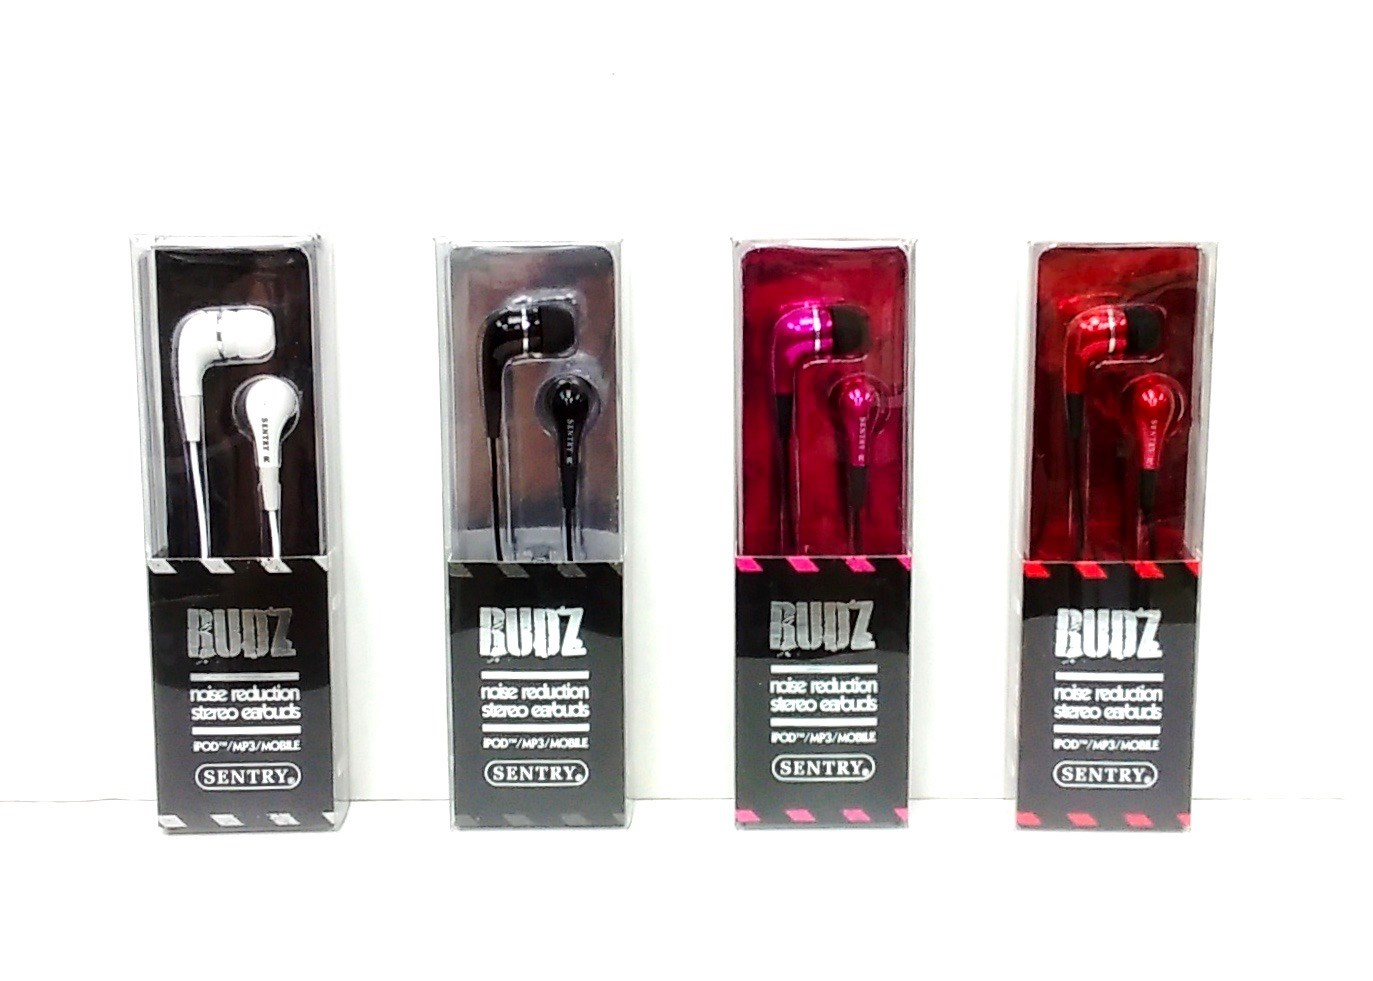 (HPS-H0105) Earbuds Assorted Colors